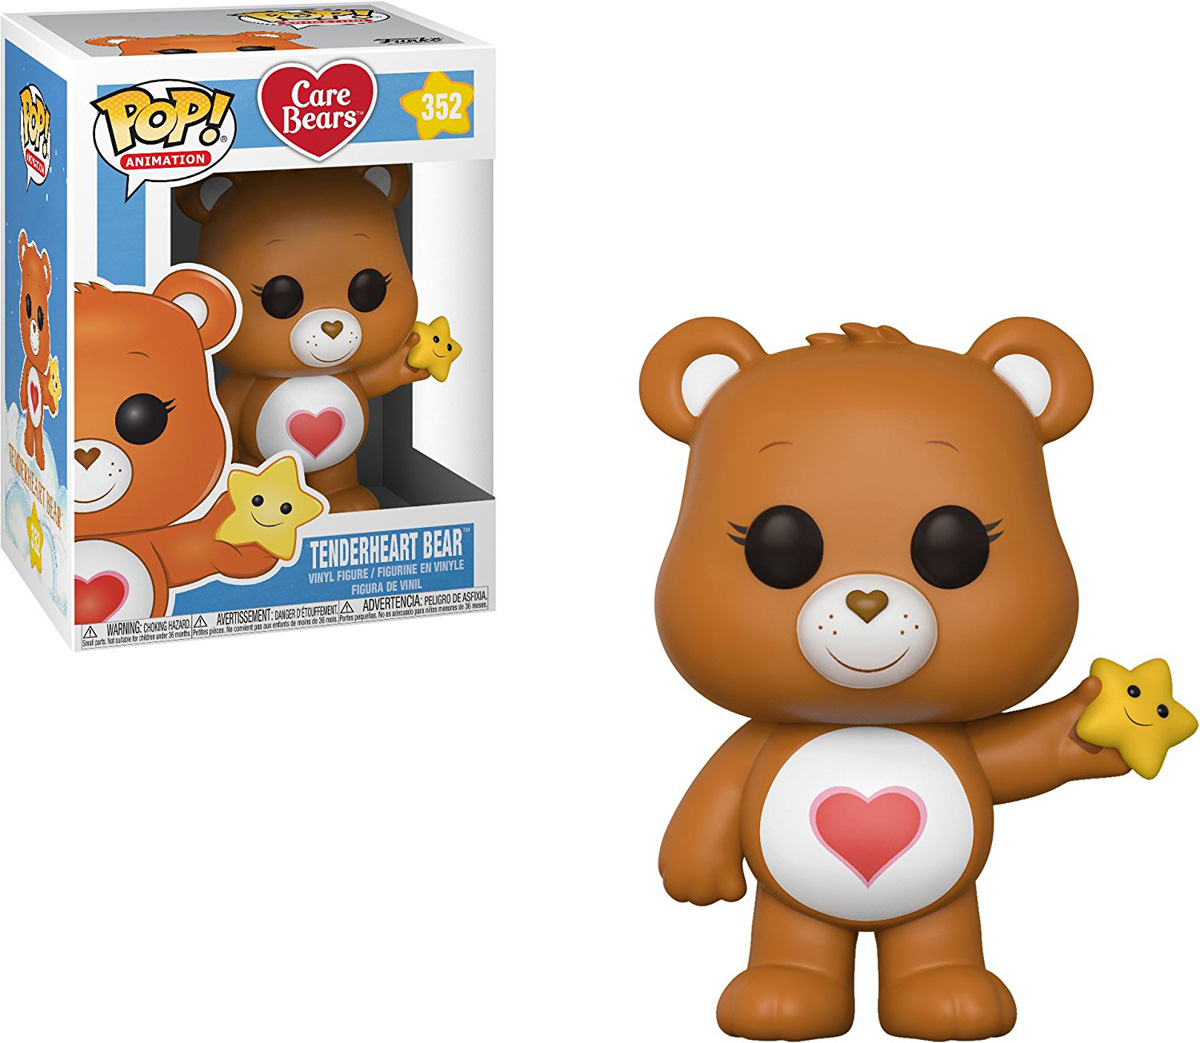 Funko POP! Vinyl Фигурка Care Bears: Tenderheart Bear 26700 цена 2017